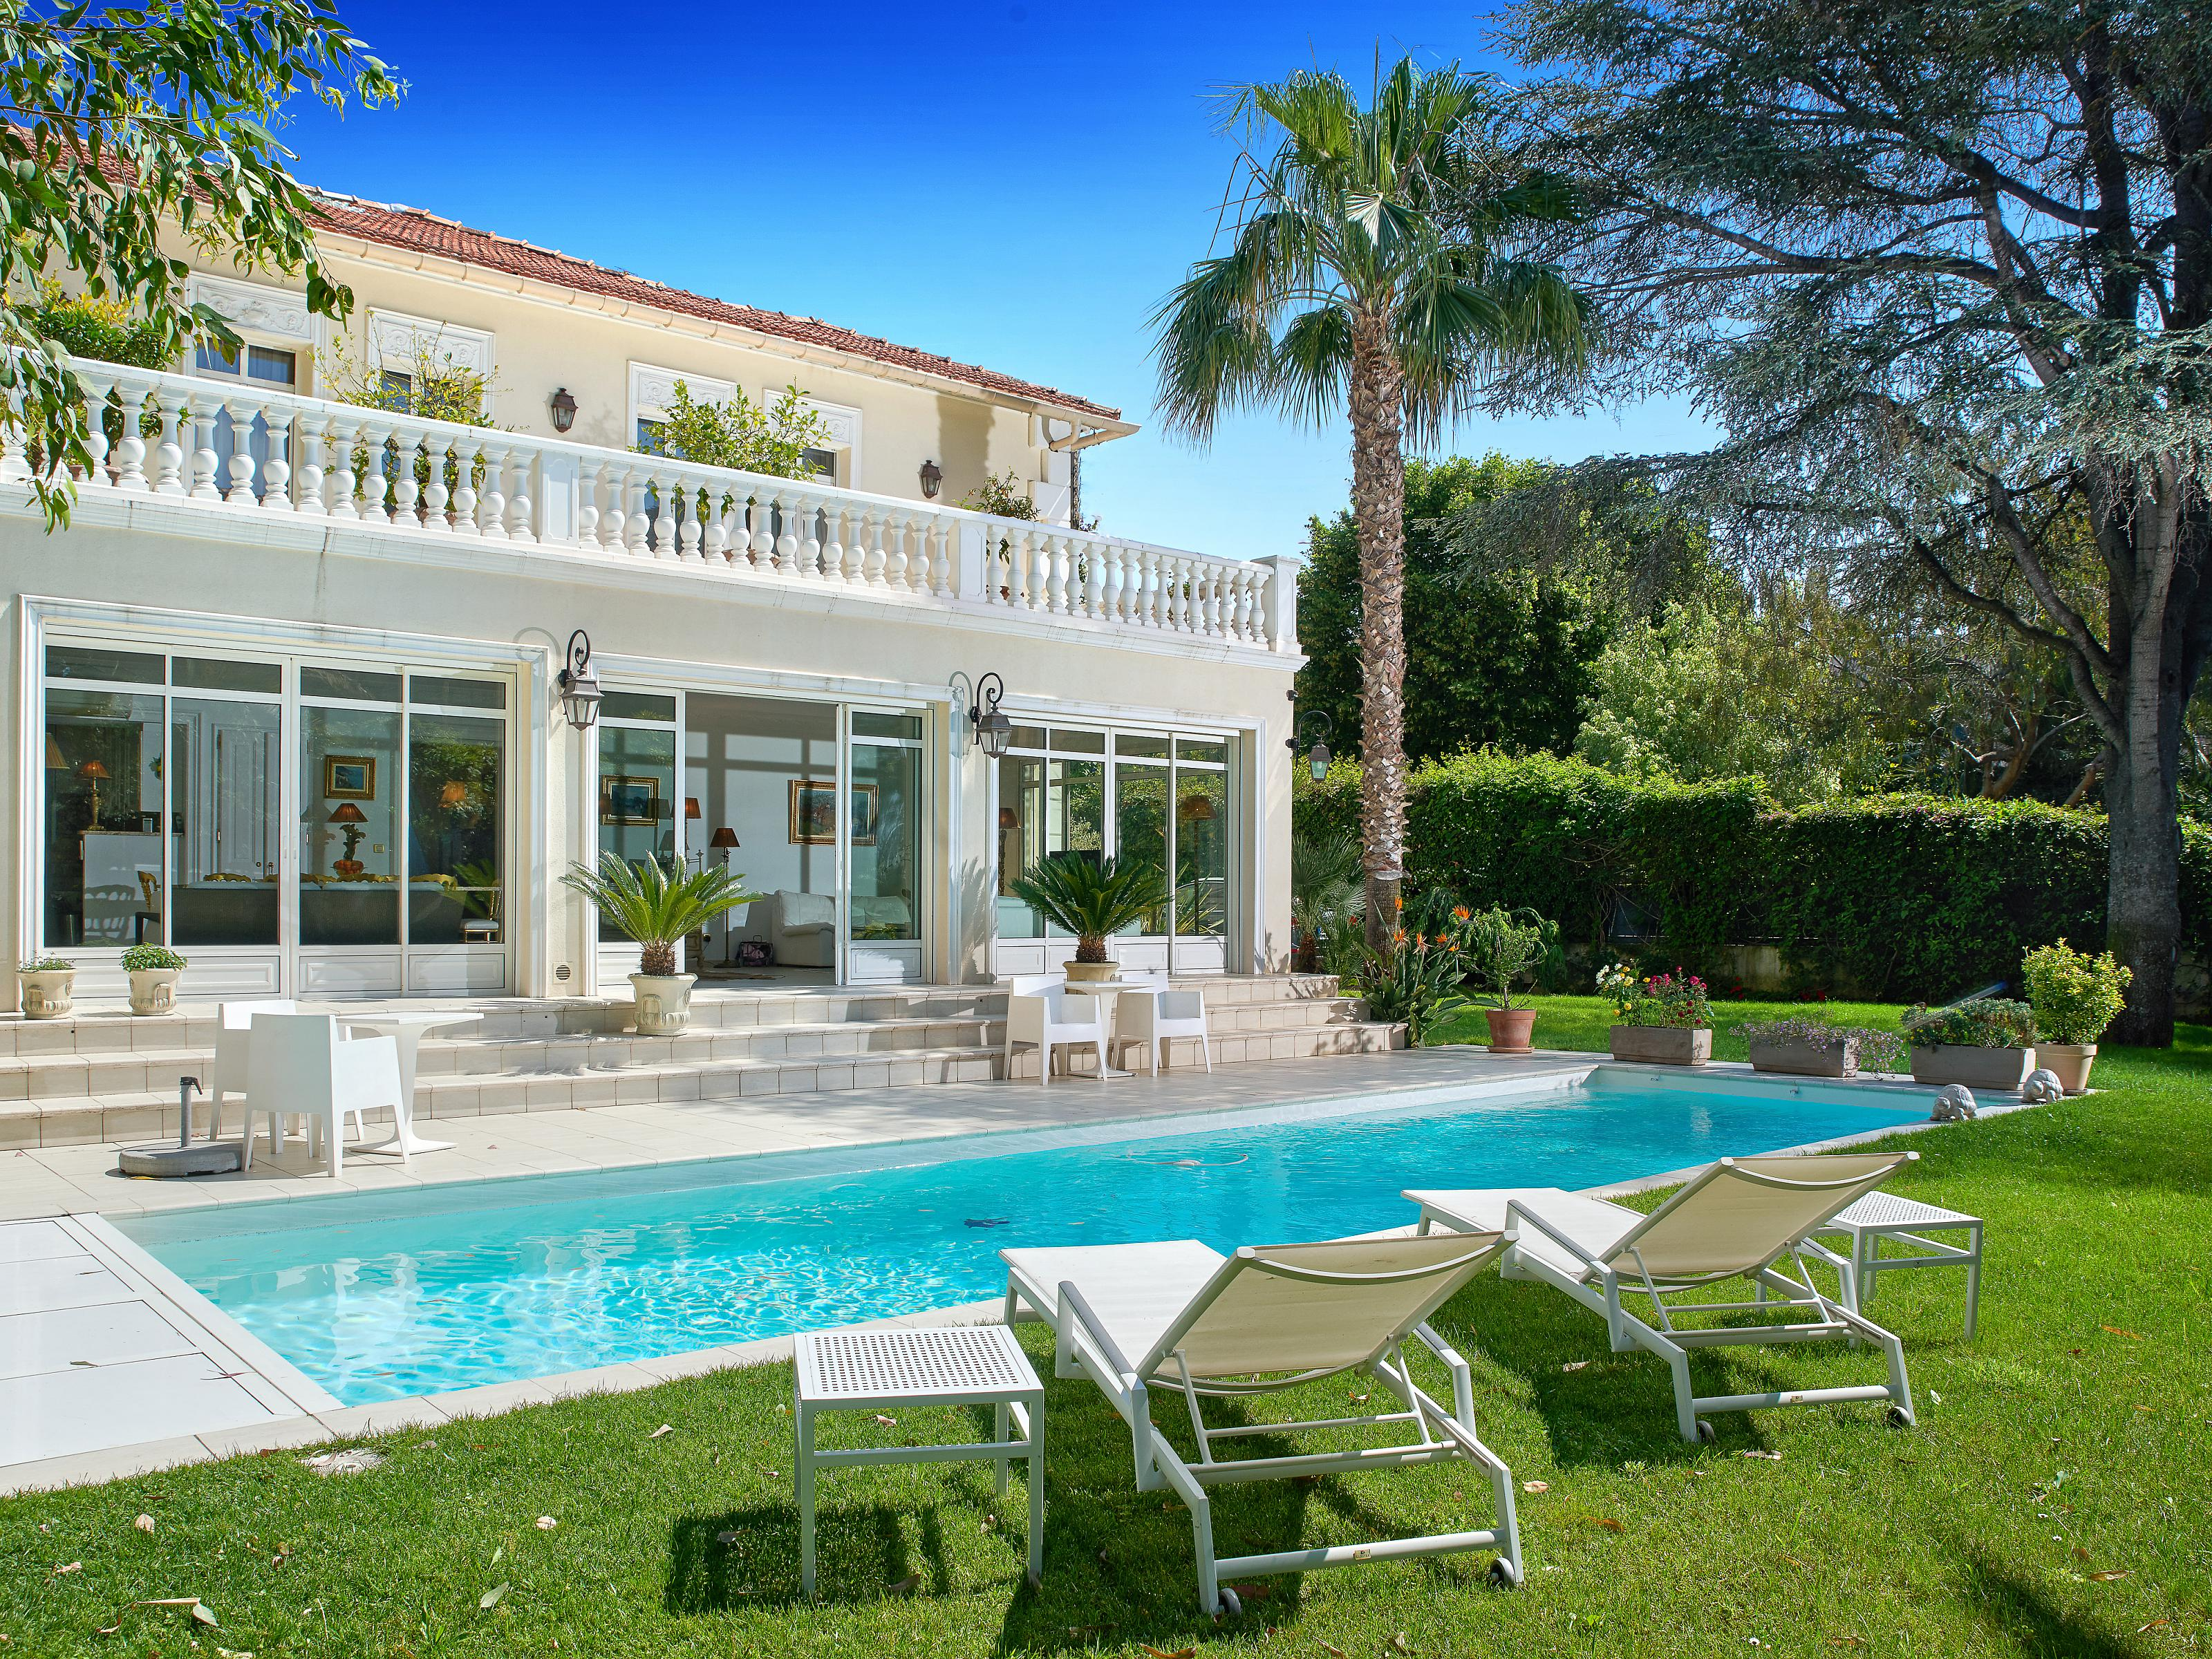 Single Family Home for Sale at Charming villa located in the sought after 'Basse Californie' in Cannes Cannes, Provence-Alpes-Cote D'Azur 06400 France